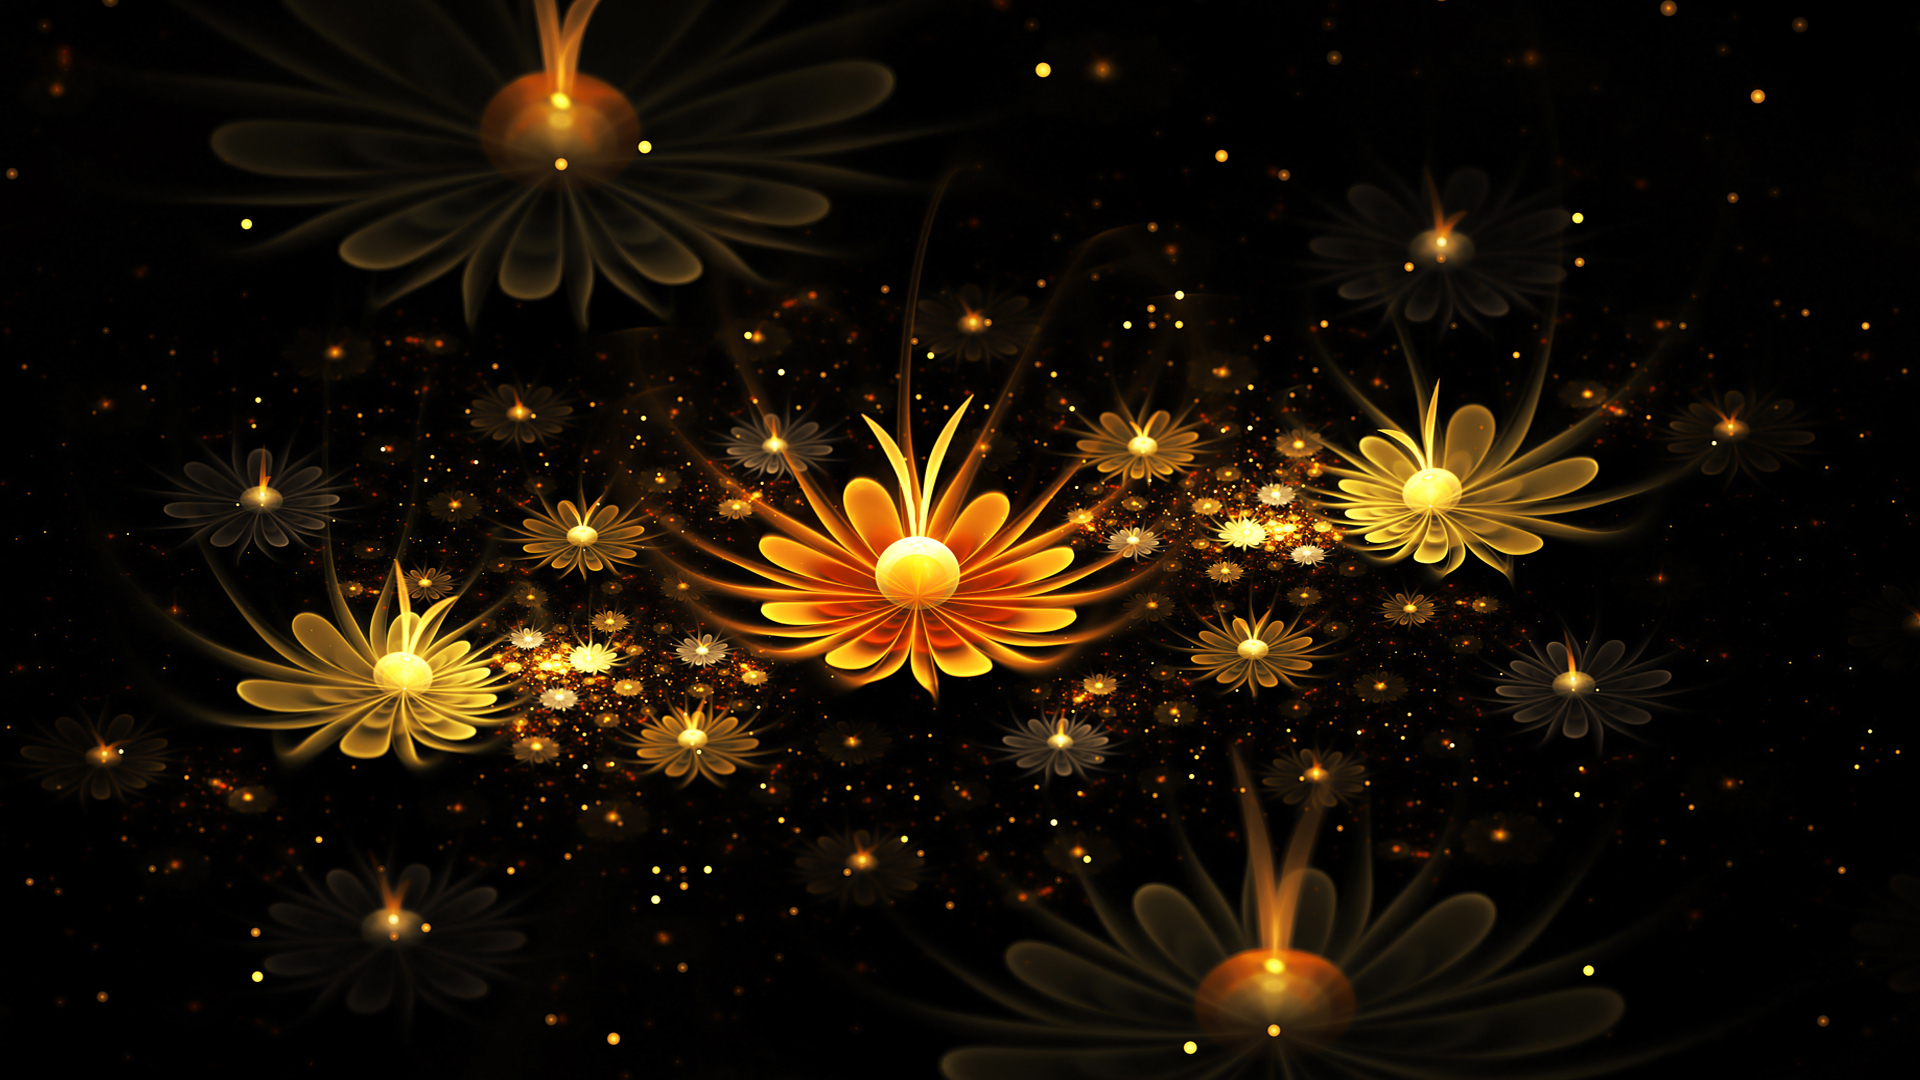 3D Flower Wallpapers for Desktop - WallpaperSafari